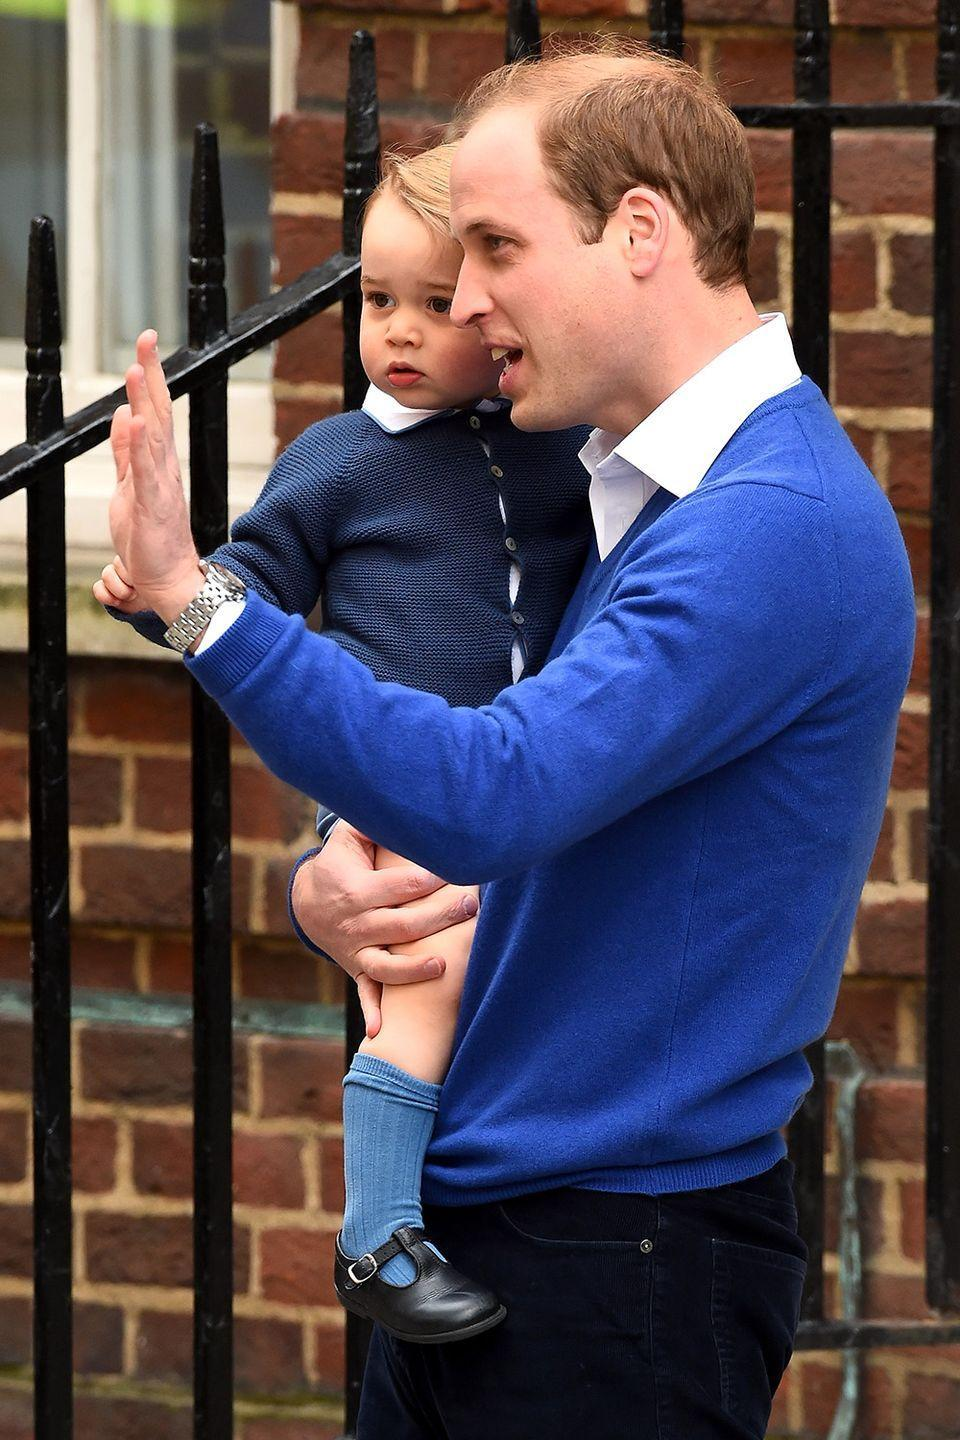 """<p>The correct title when referring to the royal baby is His or Her Royal Highness Prince or Princess (name) of <a href=""""https://www.csmonitor.com/tags/topic/Cambridge"""" rel=""""nofollow noopener"""" target=""""_blank"""" data-ylk=""""slk:Cambridge"""" class=""""link rapid-noclick-resp"""">Cambridge</a>.</p>"""